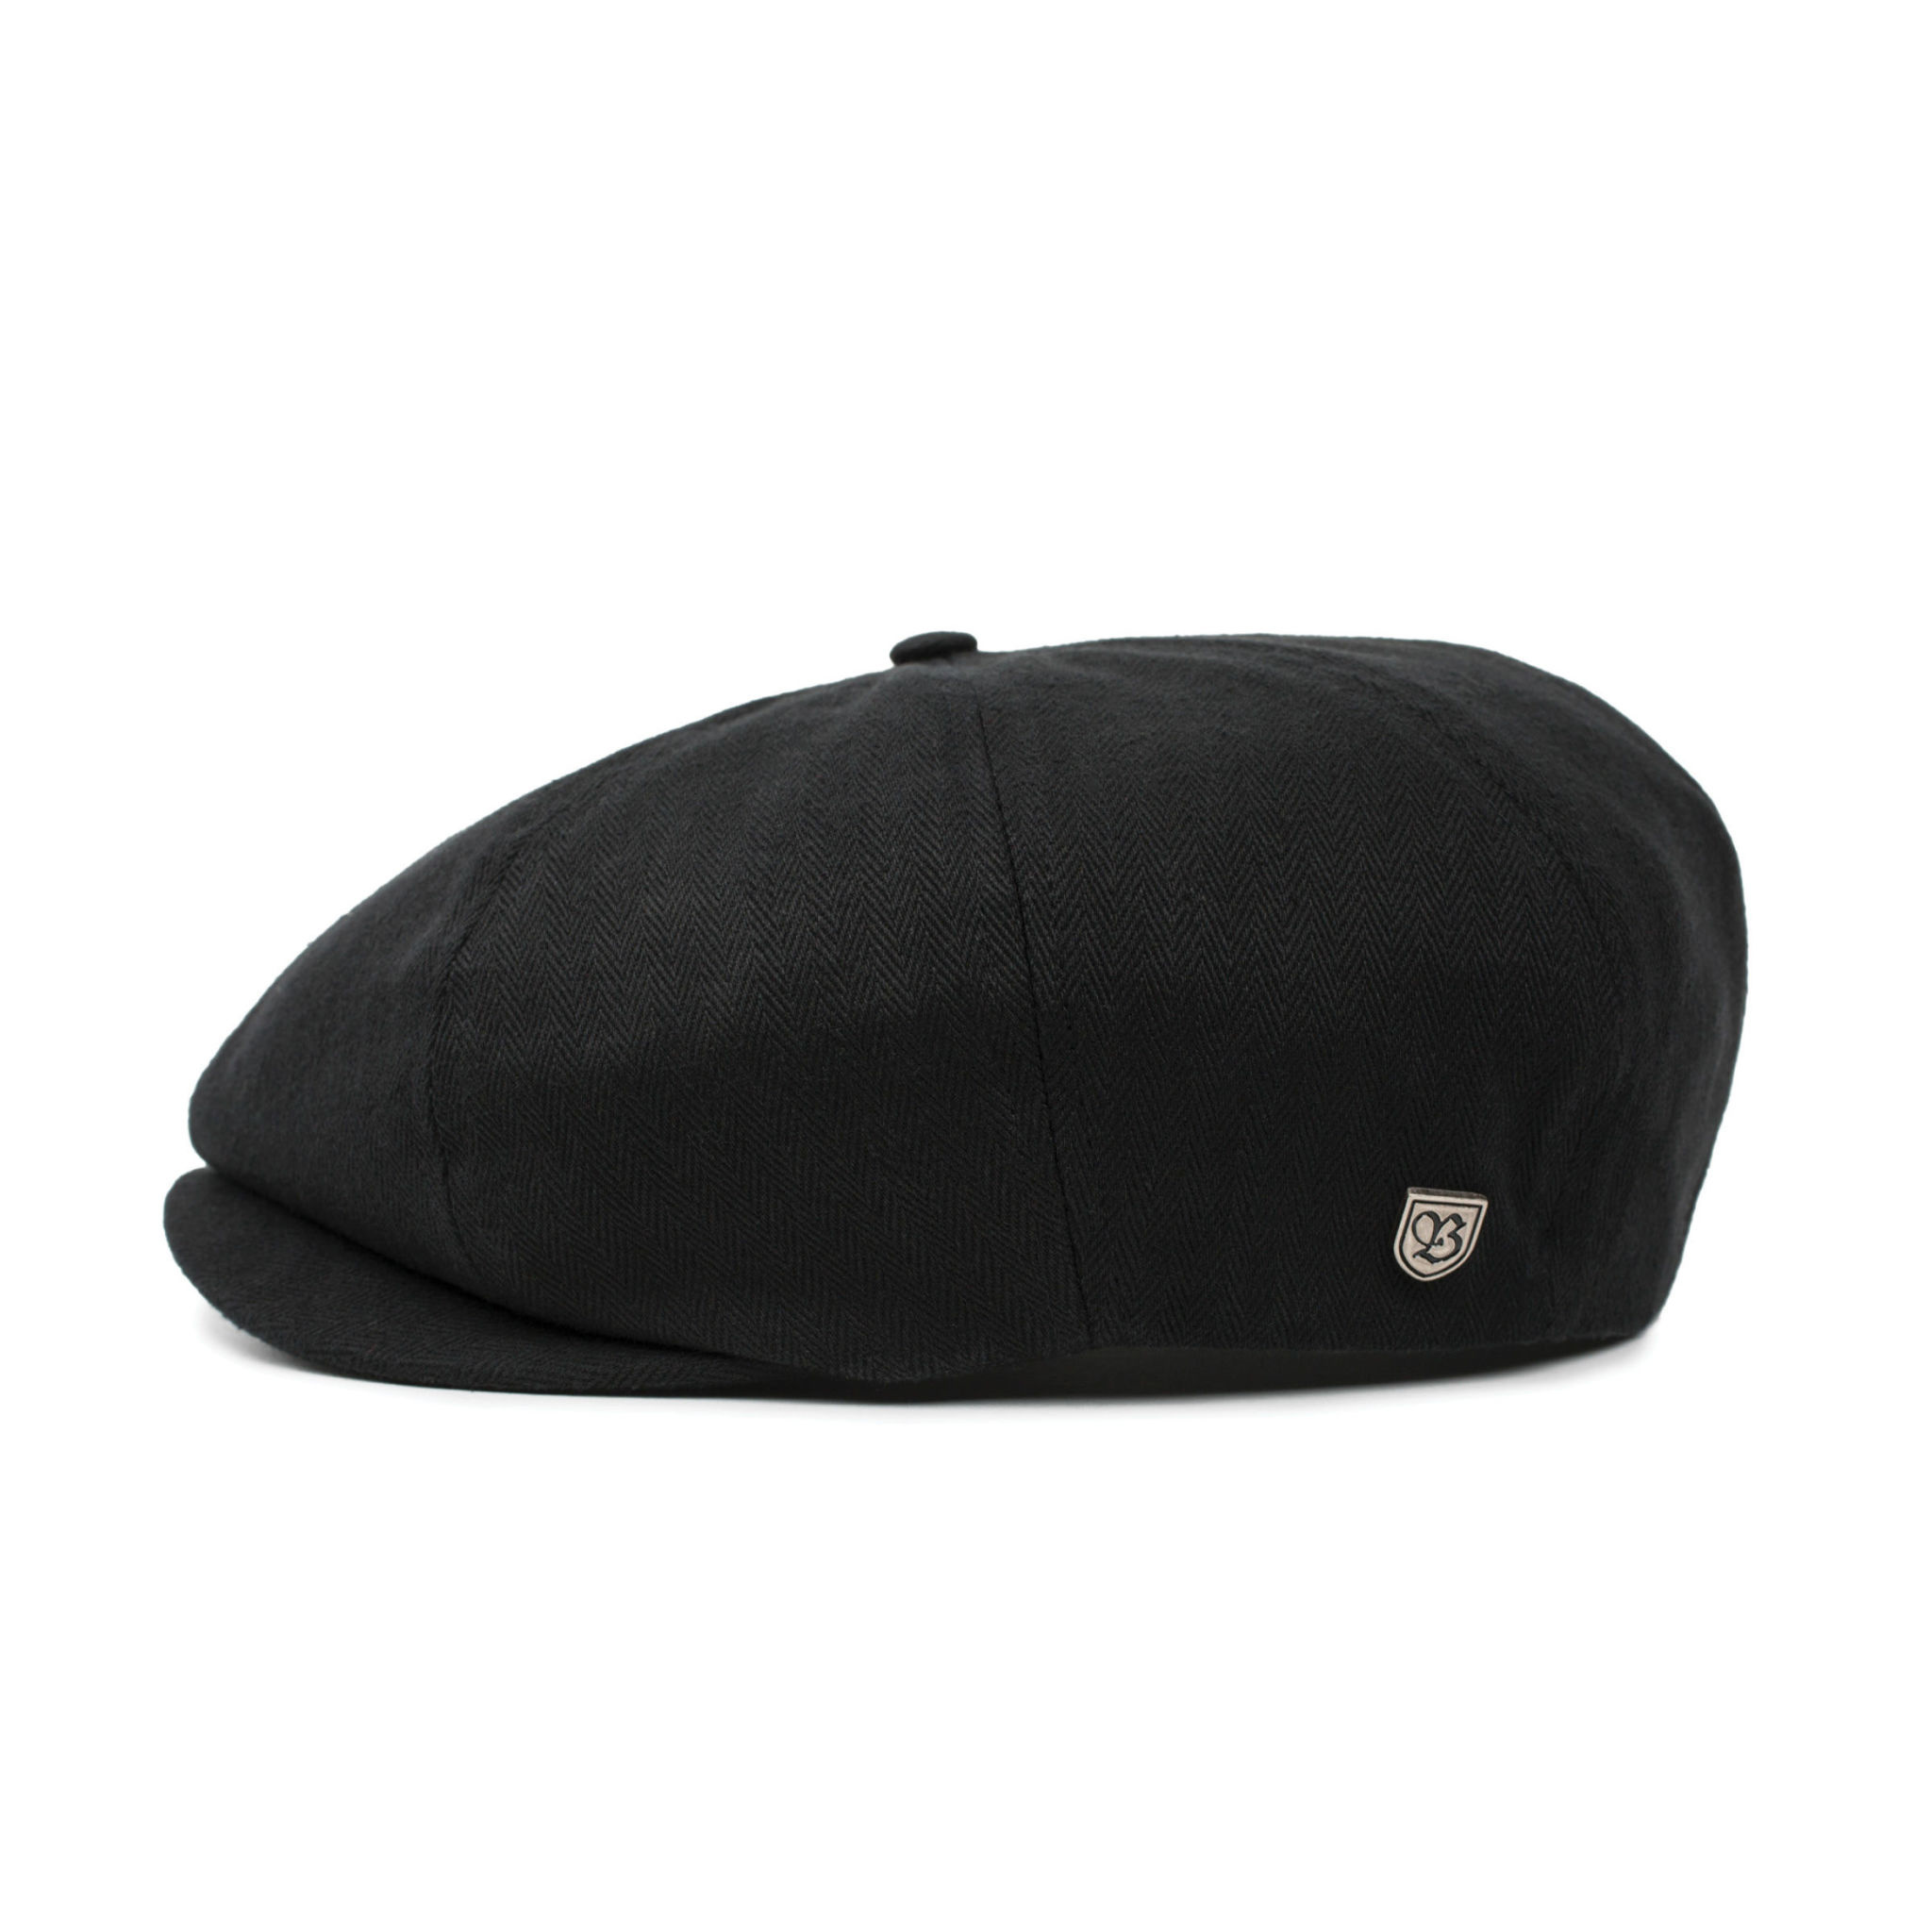 Brixton Brixton Brood Snap Cap Black